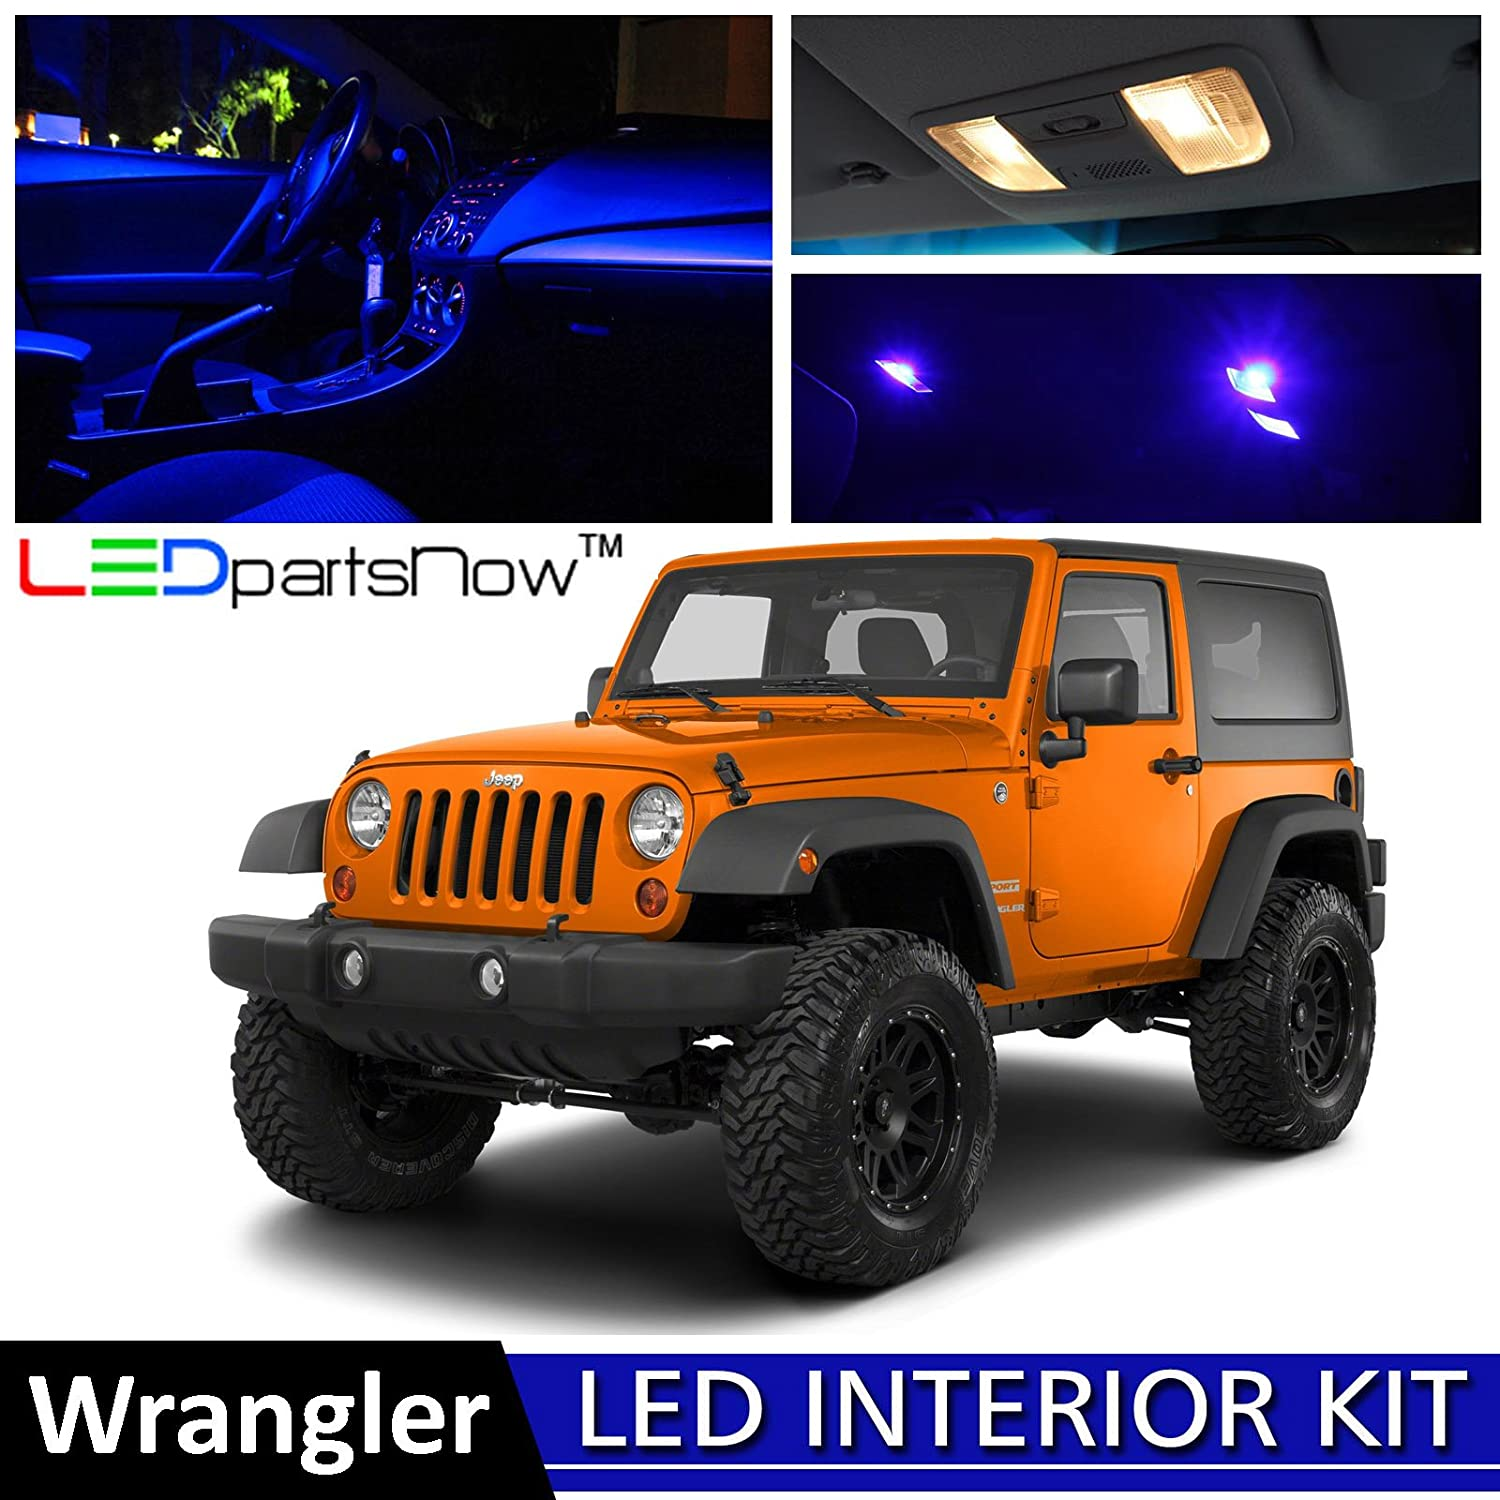 Jeep Wrangler Interior Lights Switch